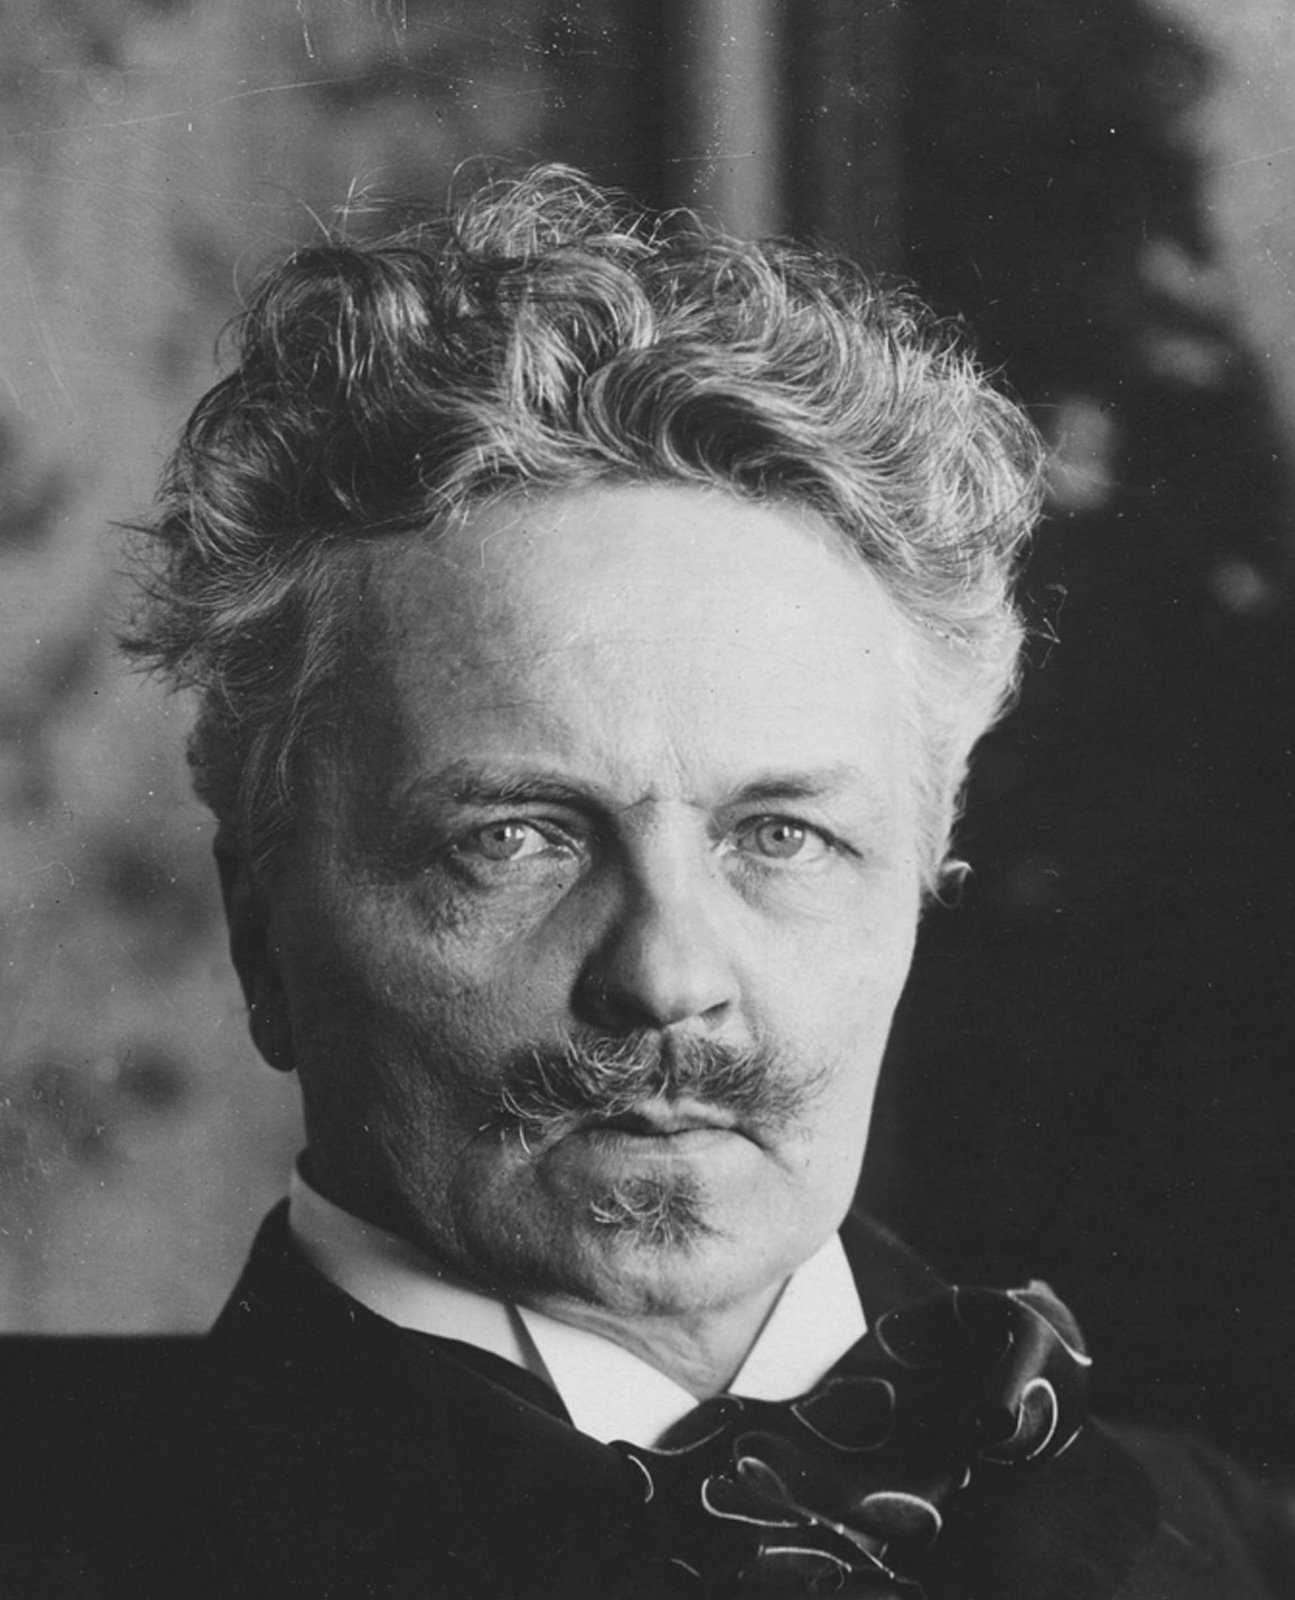 https://upload.wikimedia.org/wikipedia/commons/0/0c/AugustStrindberg.jpg